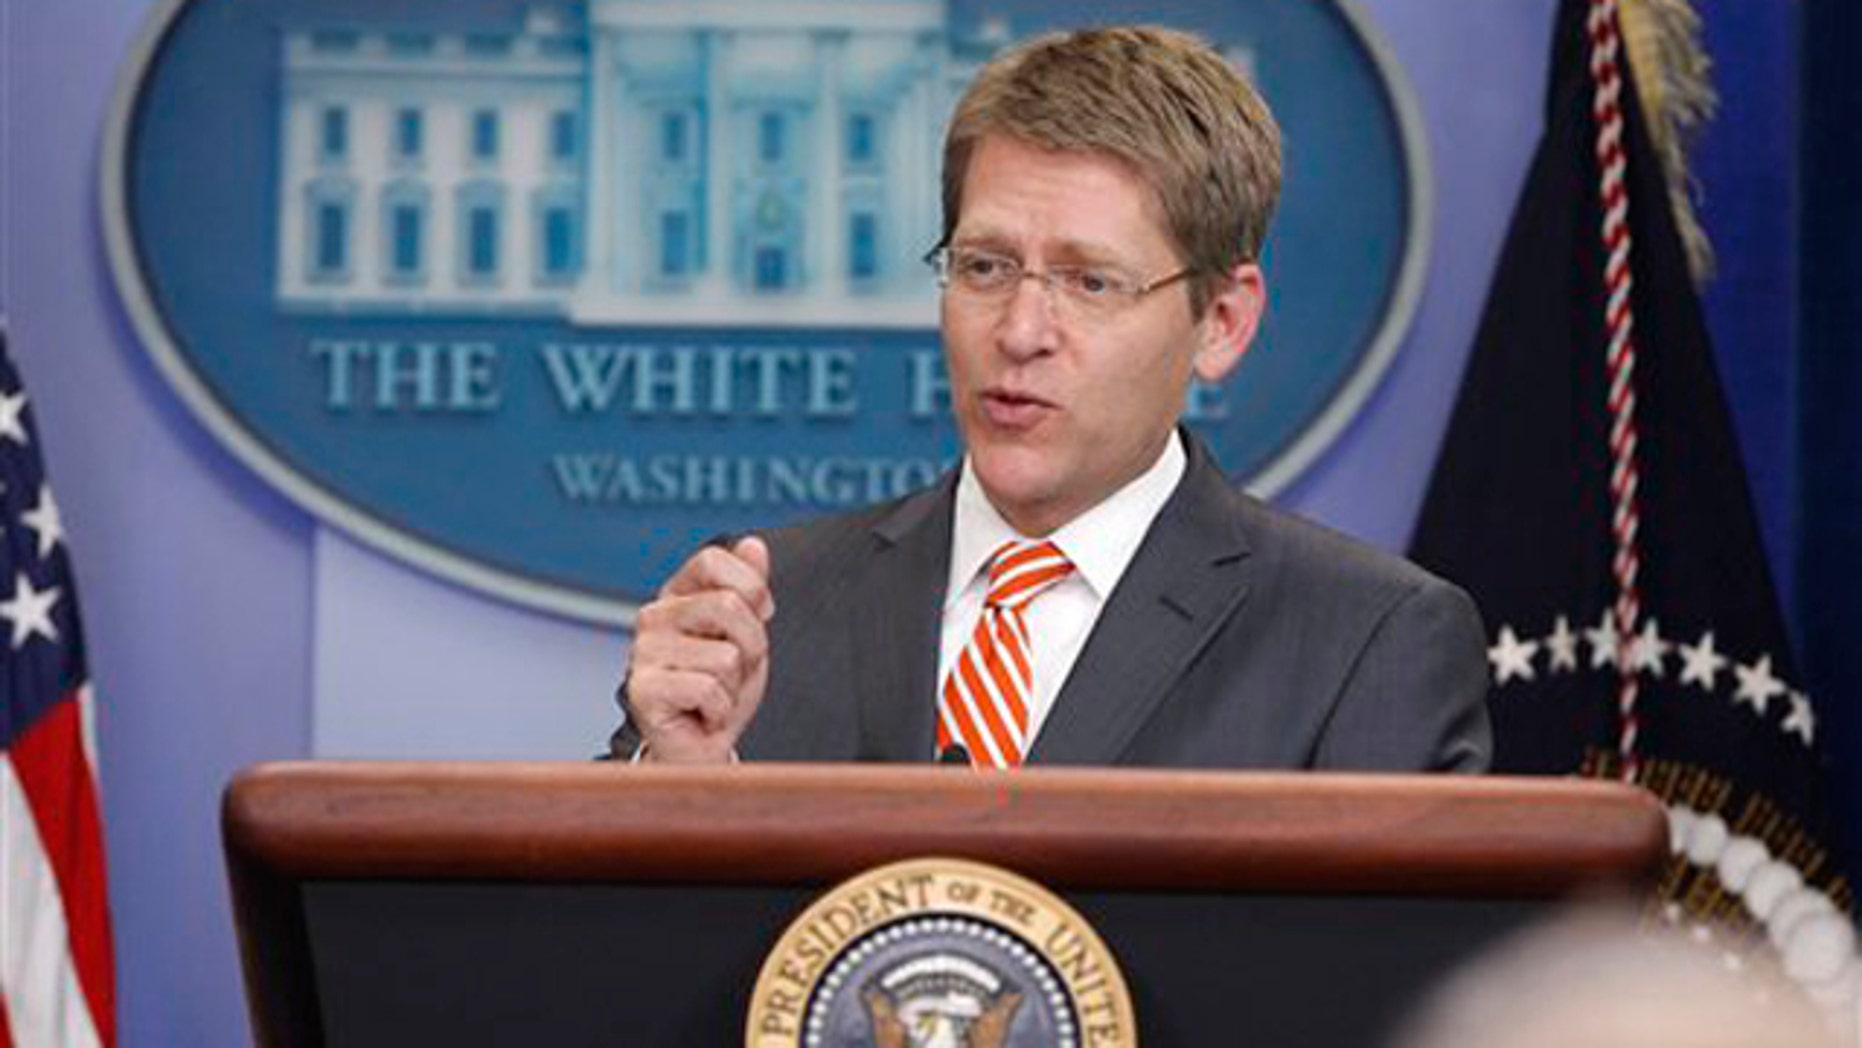 White House Press Secretary Jay Carney briefs reporters at the White House July 5.